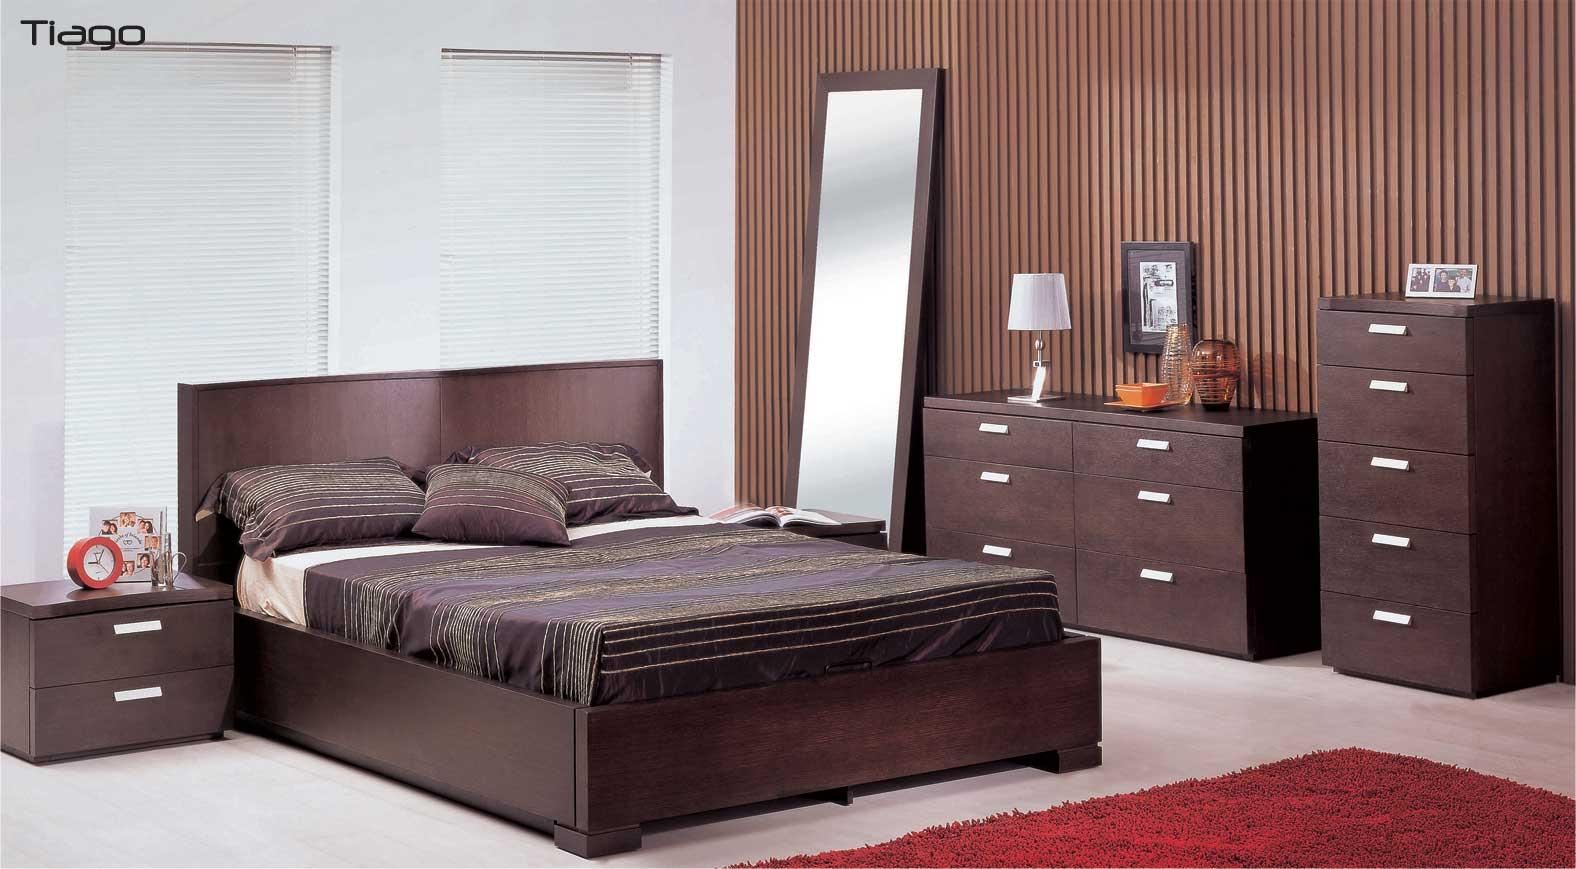 Furniture for a Brown-Themed Bedroom - LA Furniture Blog